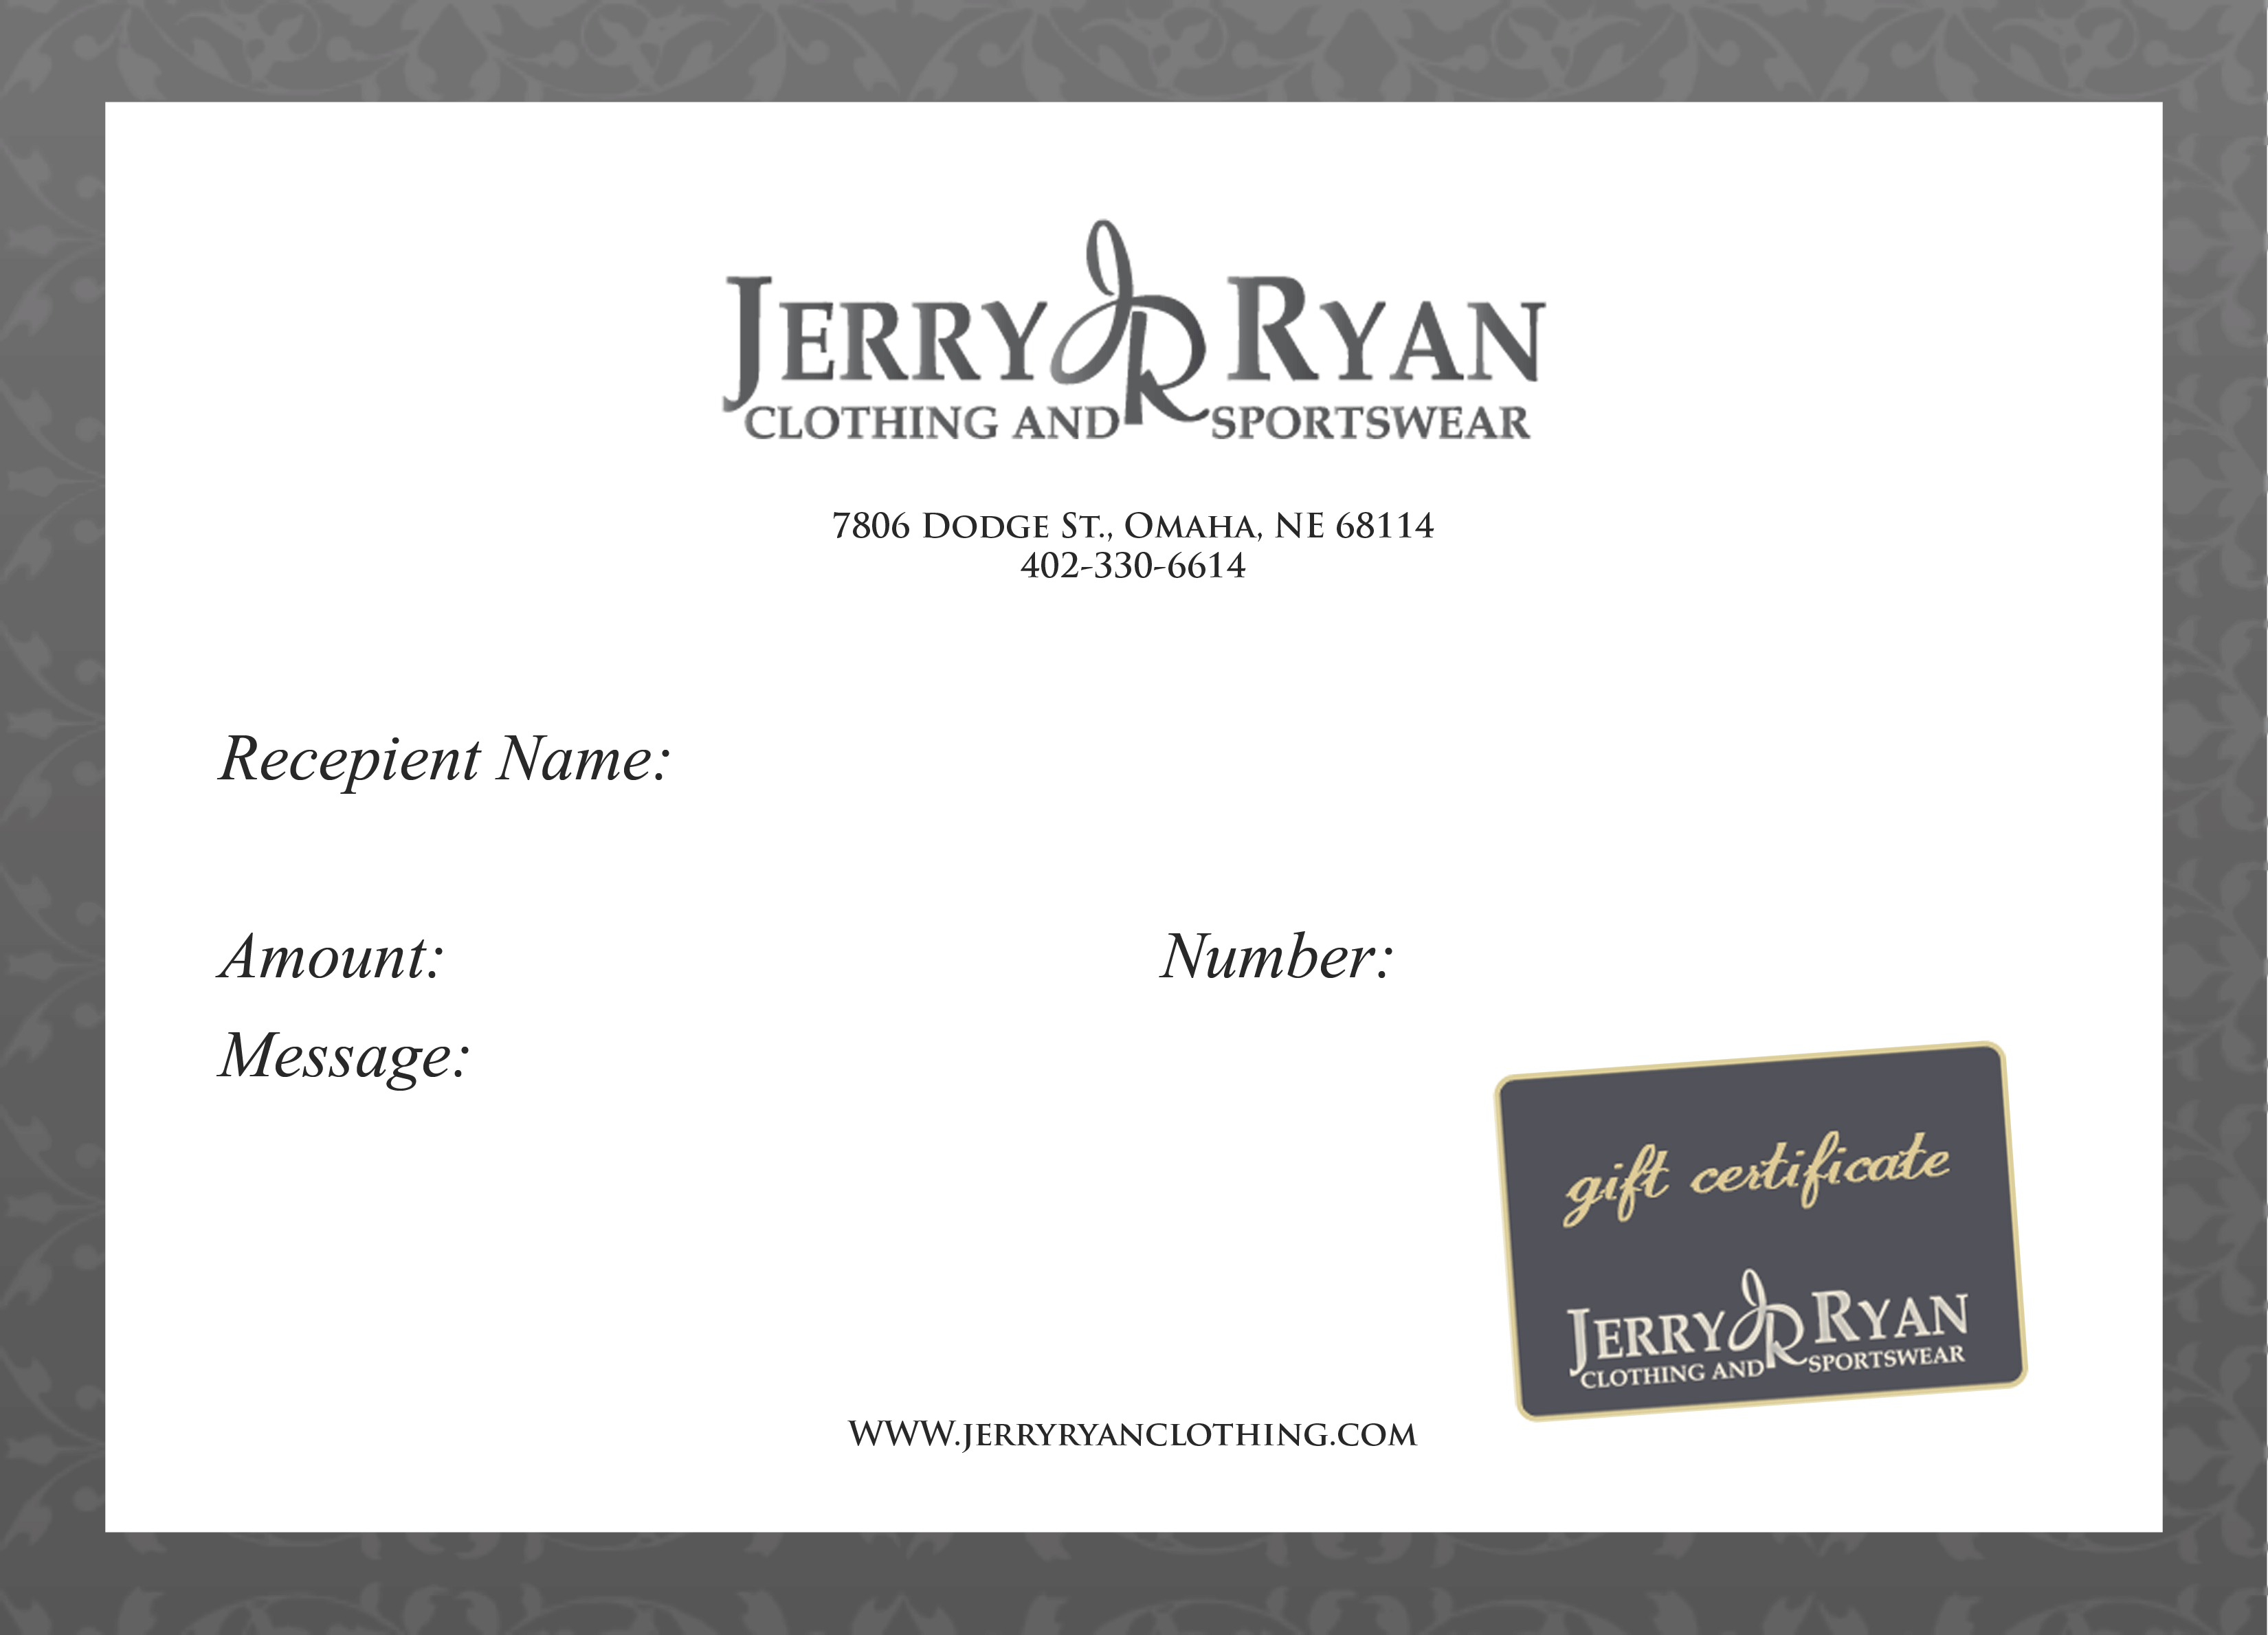 Jerry Ryan Clothing & Sportswear Gift Card - Jerry Ryan Clothing ...